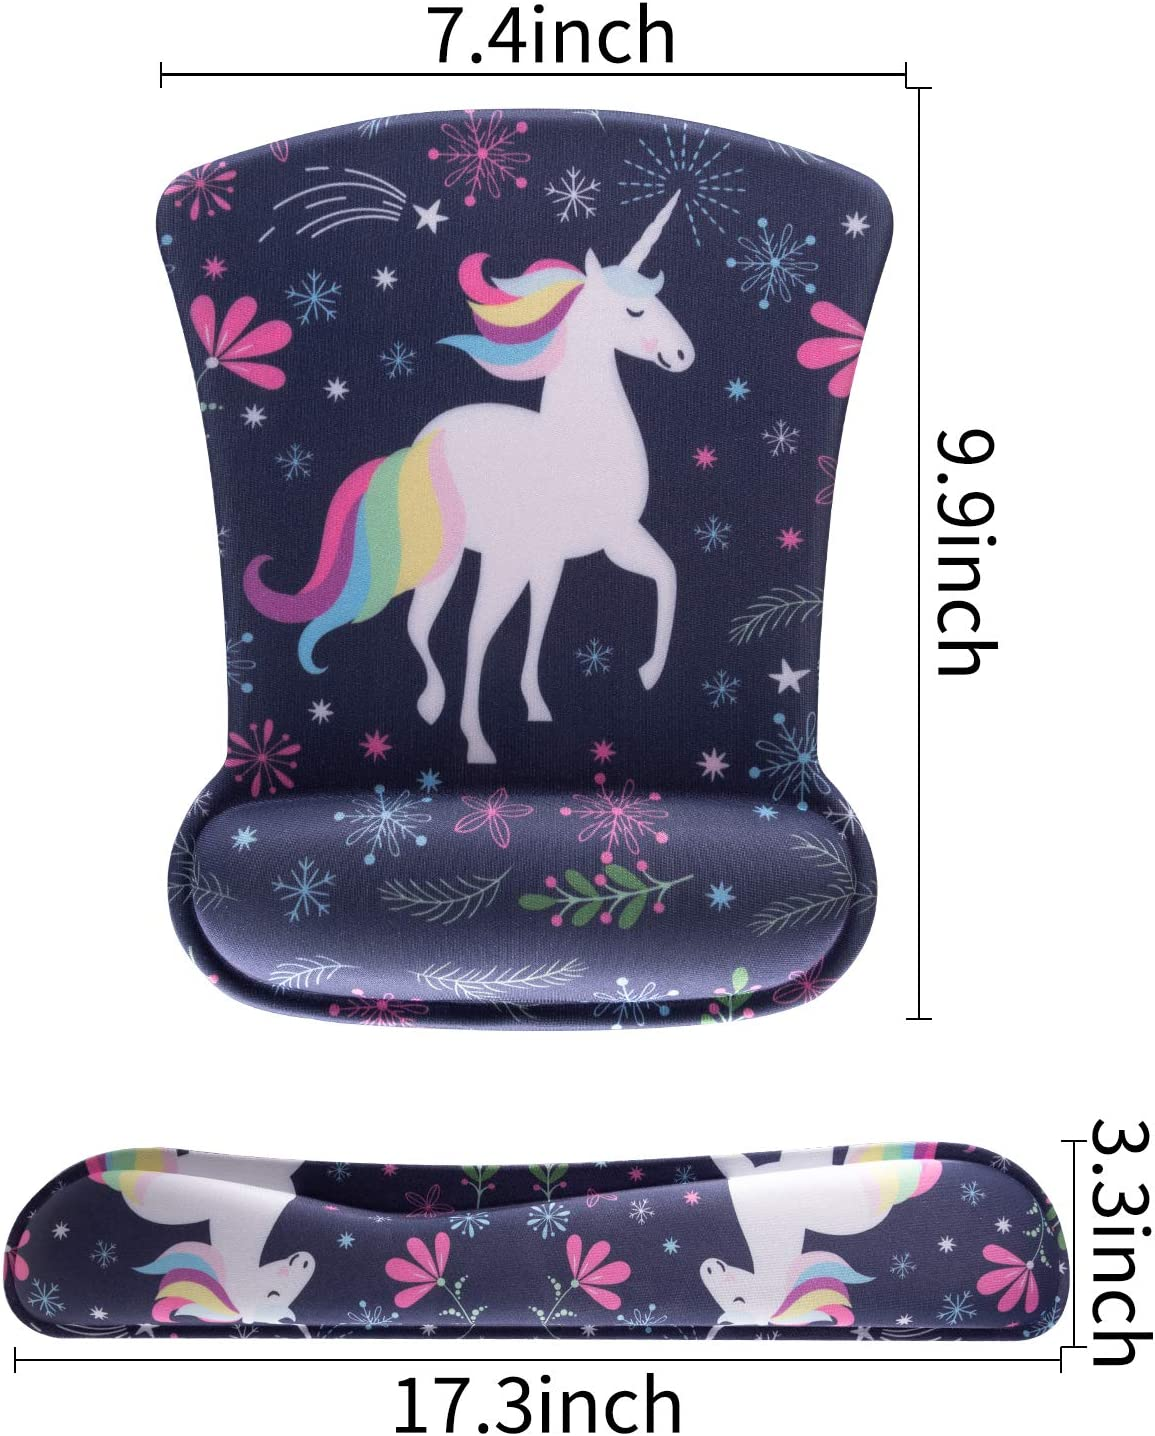 AORTDES Keyboard Wrist Rest Pad And Mouse Wrist Rest Support Colorful Butterflies /& Flowers Durable /& Comfortable /& Lightweight Mouse Pad Rest Set For Easy Typing /& Pain Relief Ergonomic Support